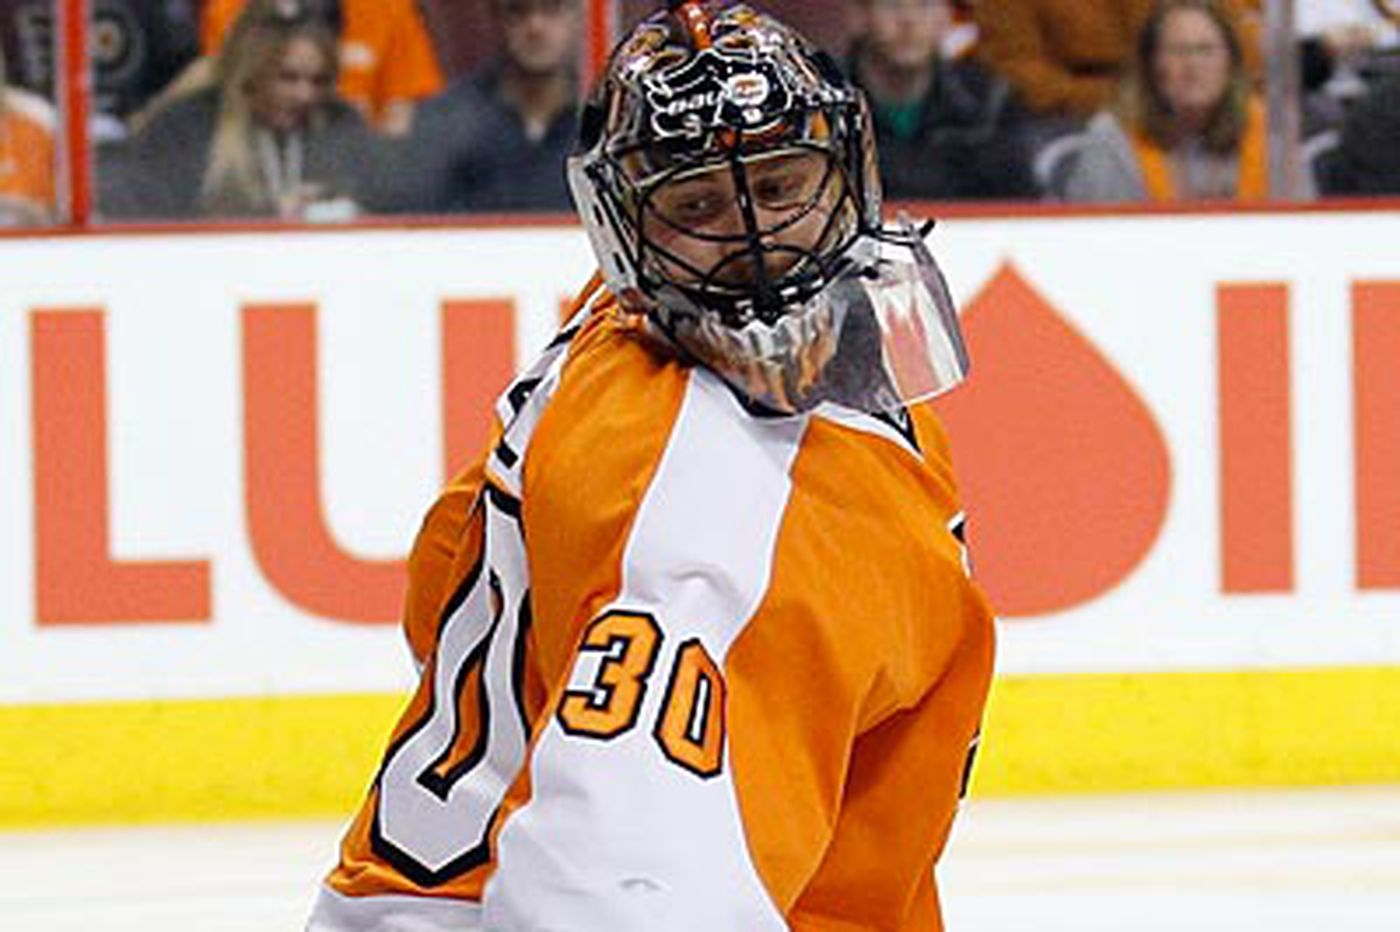 Bryzgalov practices, but he'll probably miss both games this weekend